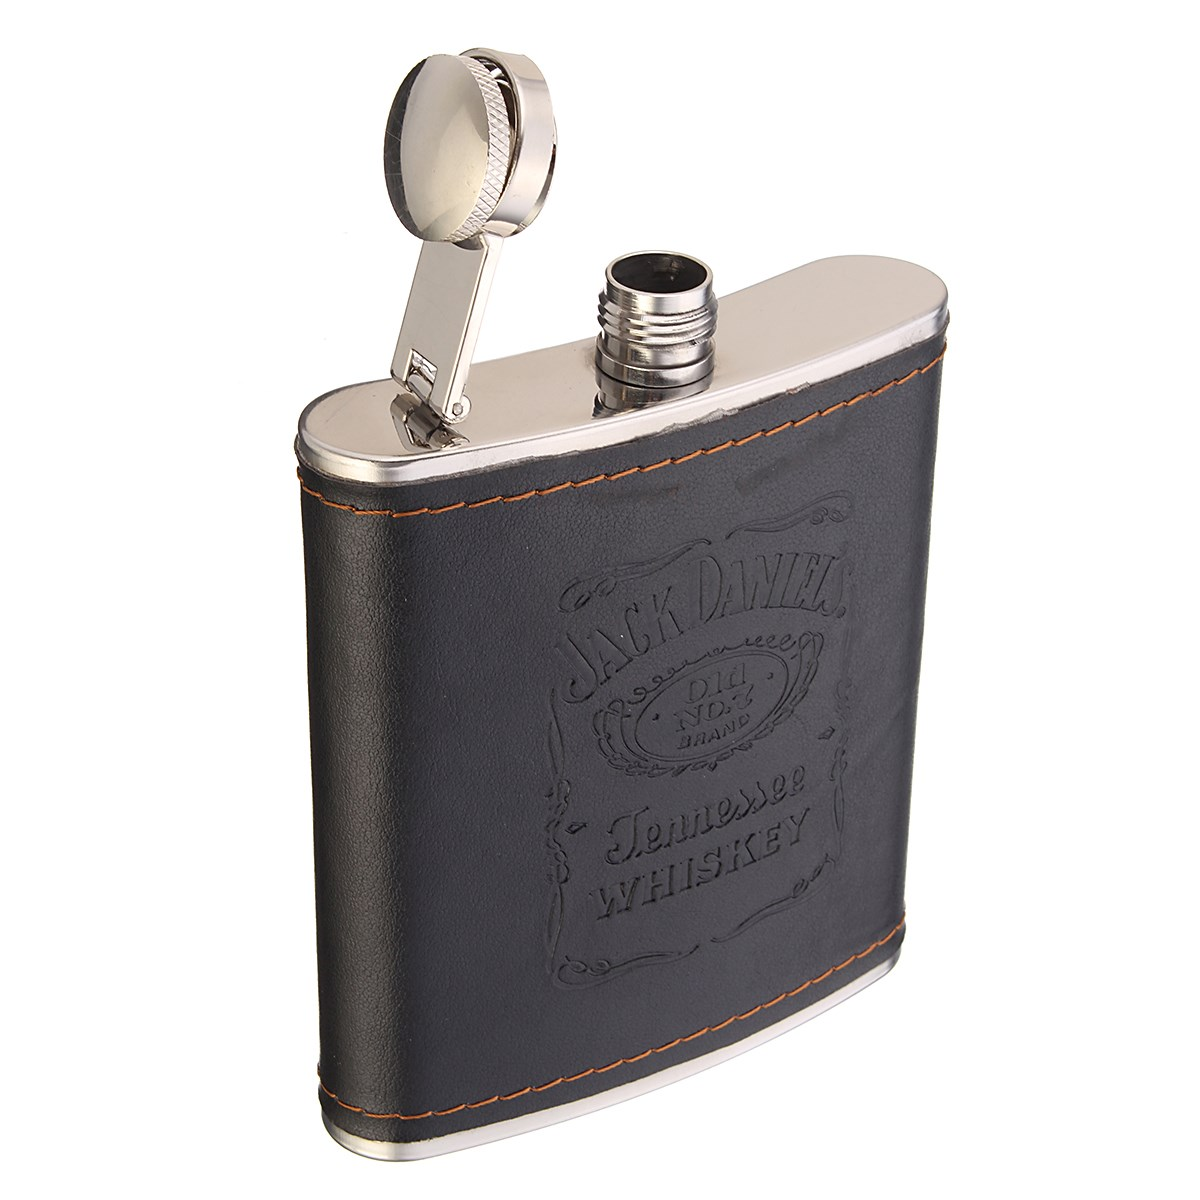 Portable Stainless Steel Hip Flask Whiskey Flask Bottle Mug Engraving Wisky Jerry Can outdoor camping travel tableware